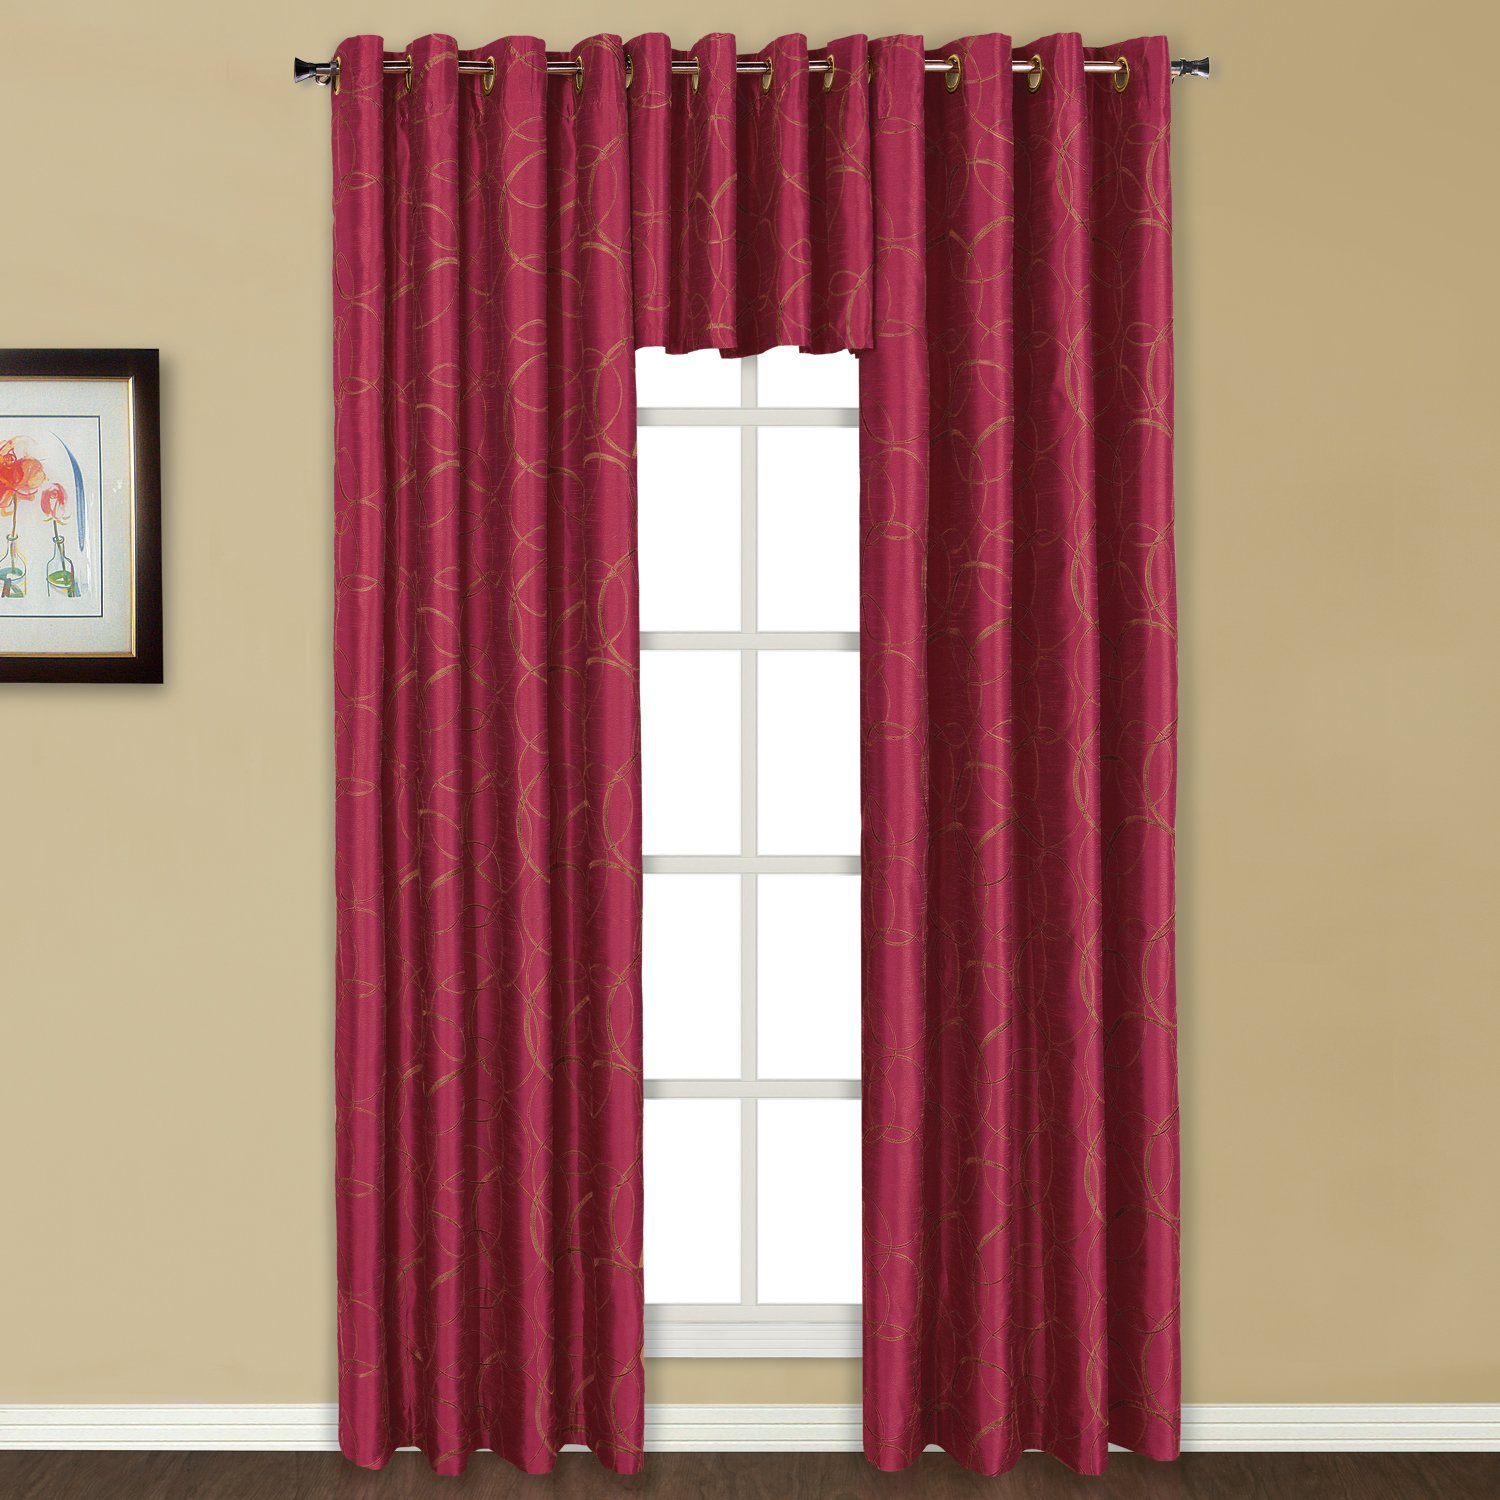 Amazon.com: United Curtain Sinclair Embroidered Grommet Valance, 54 By  18 Inch, Burgundy: Home U0026 Kitchen